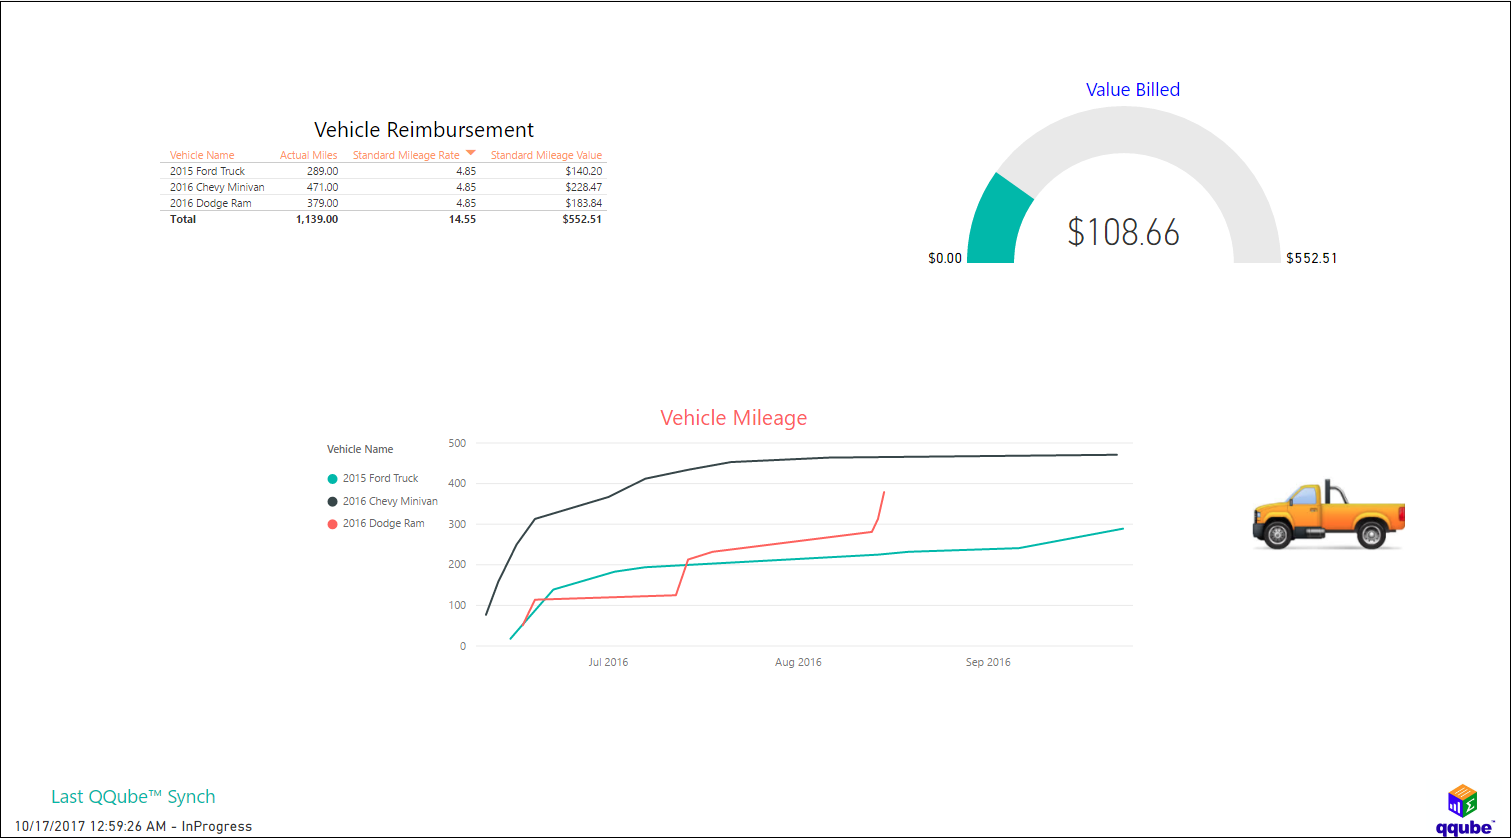 QQube and Power BI - Vehicle Mileage